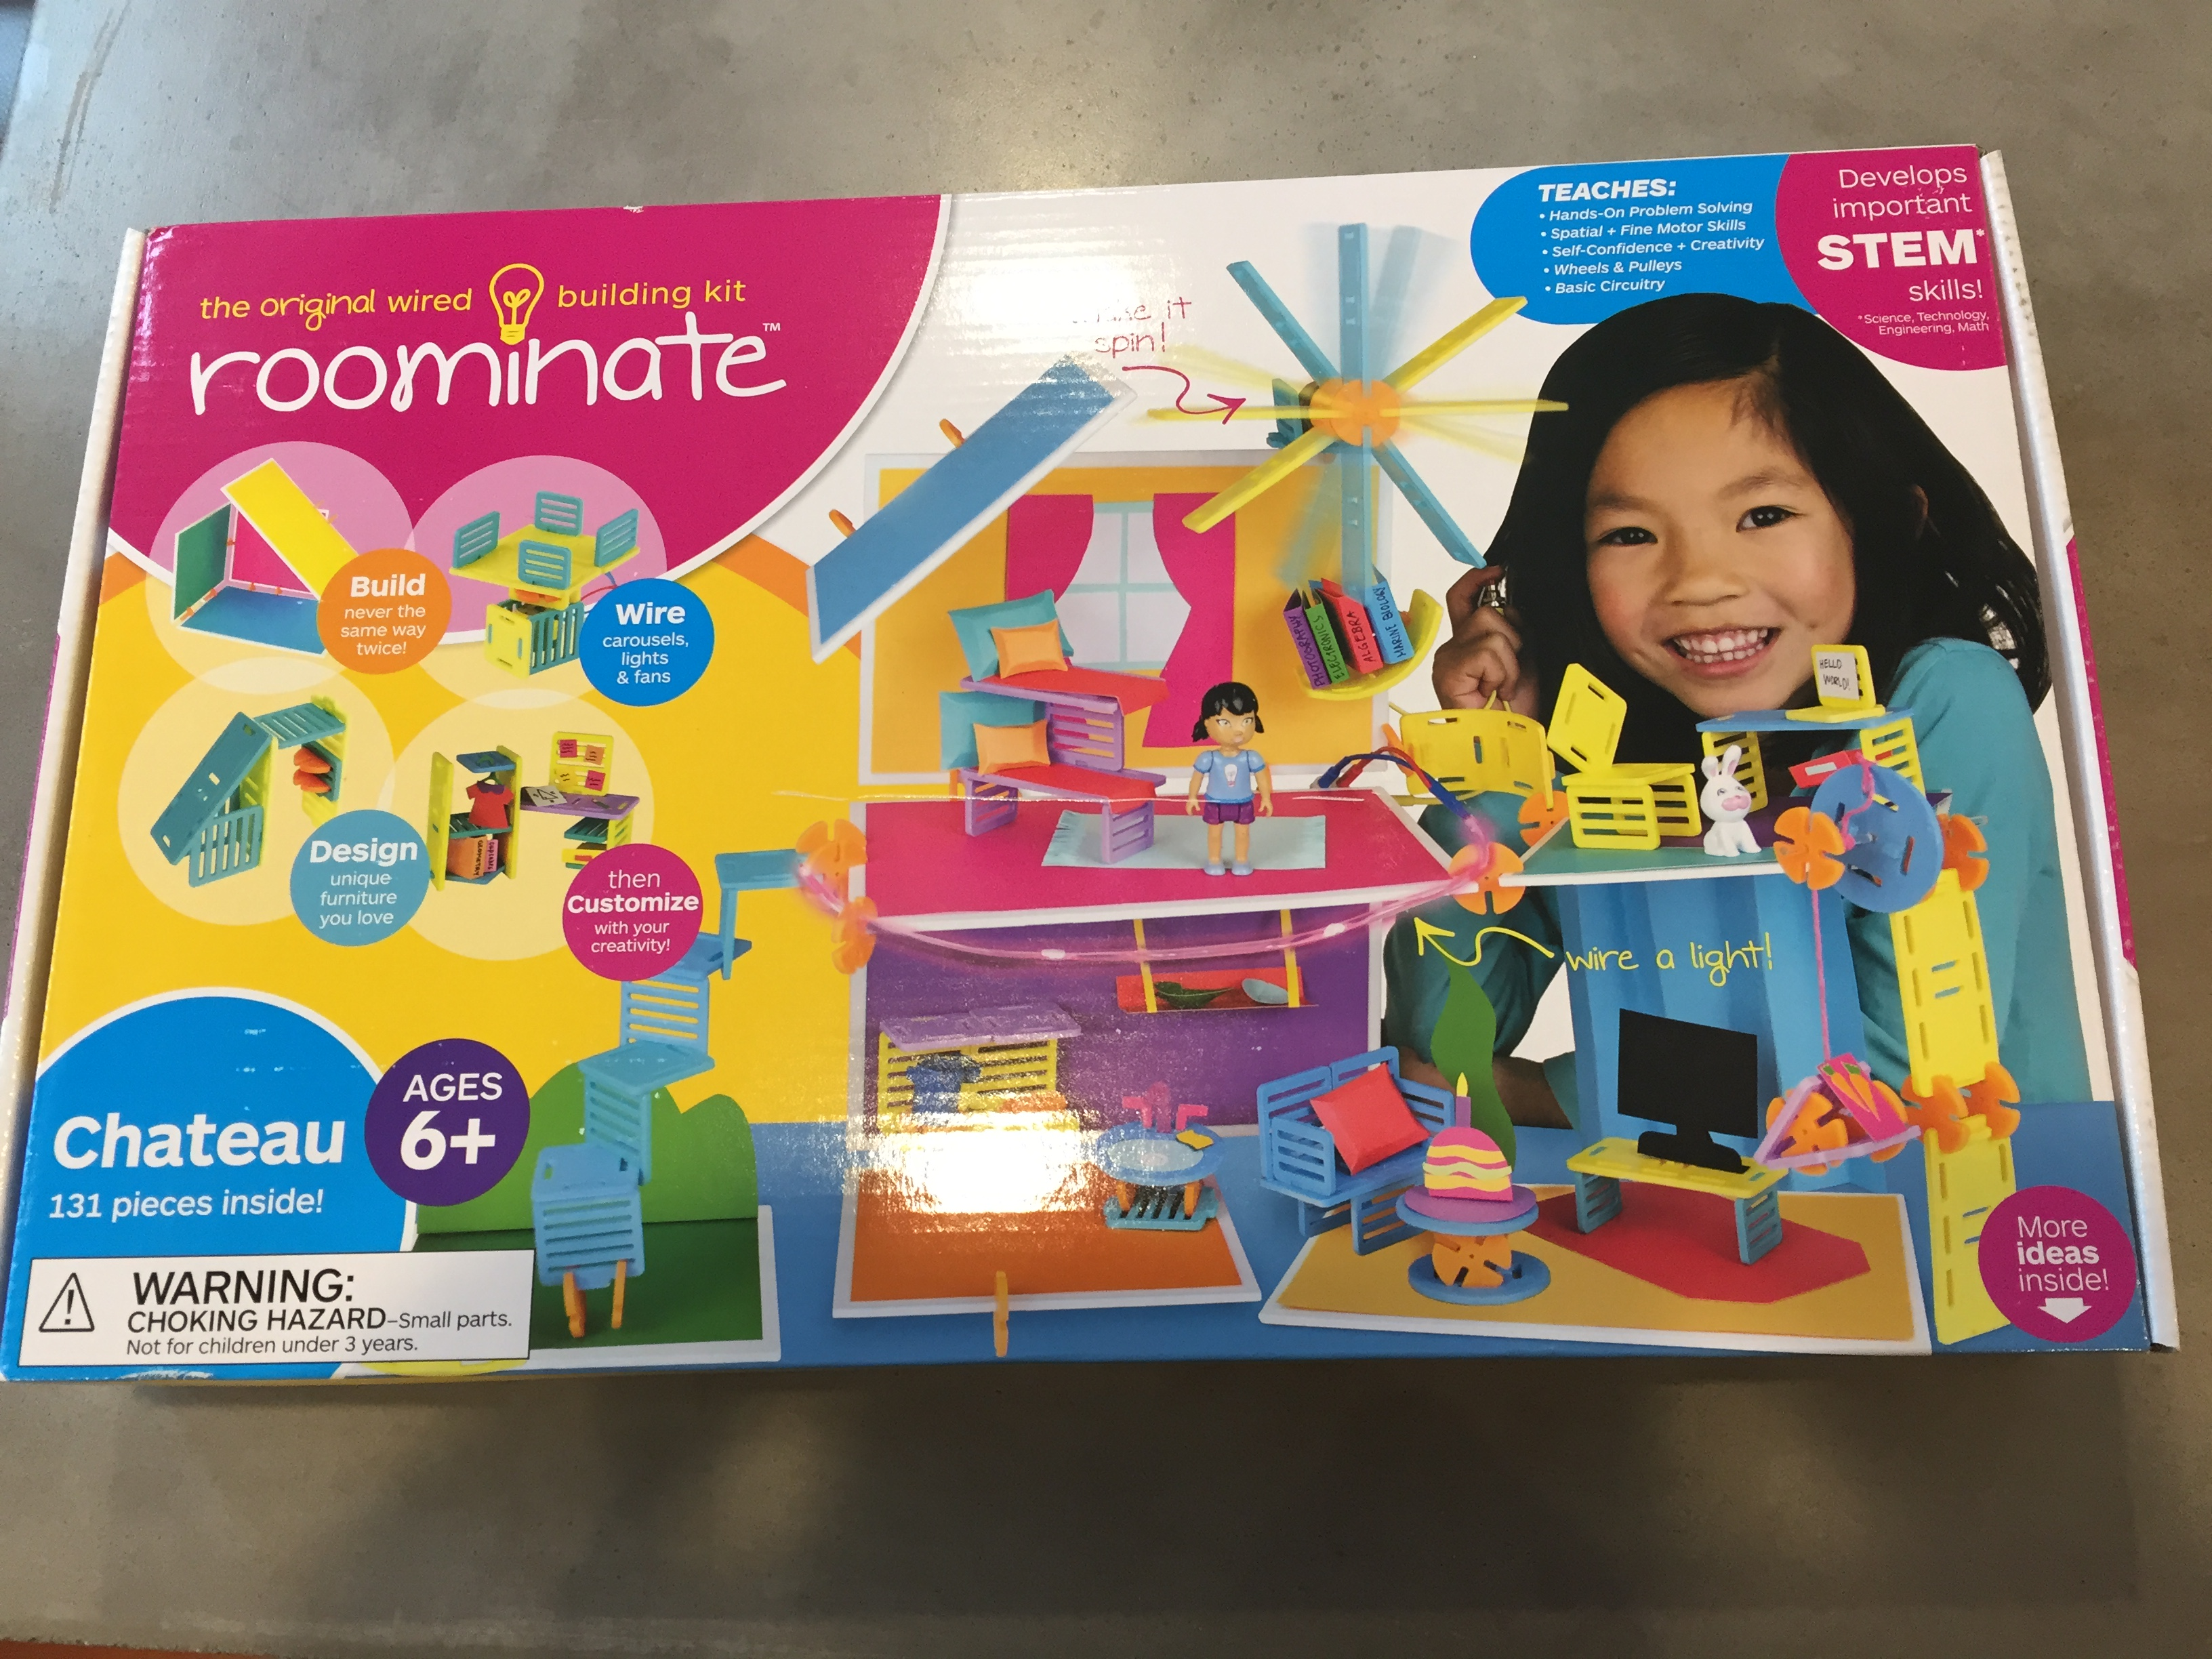 Construction Toys For Girls : Imagine create and play with roominate s construction